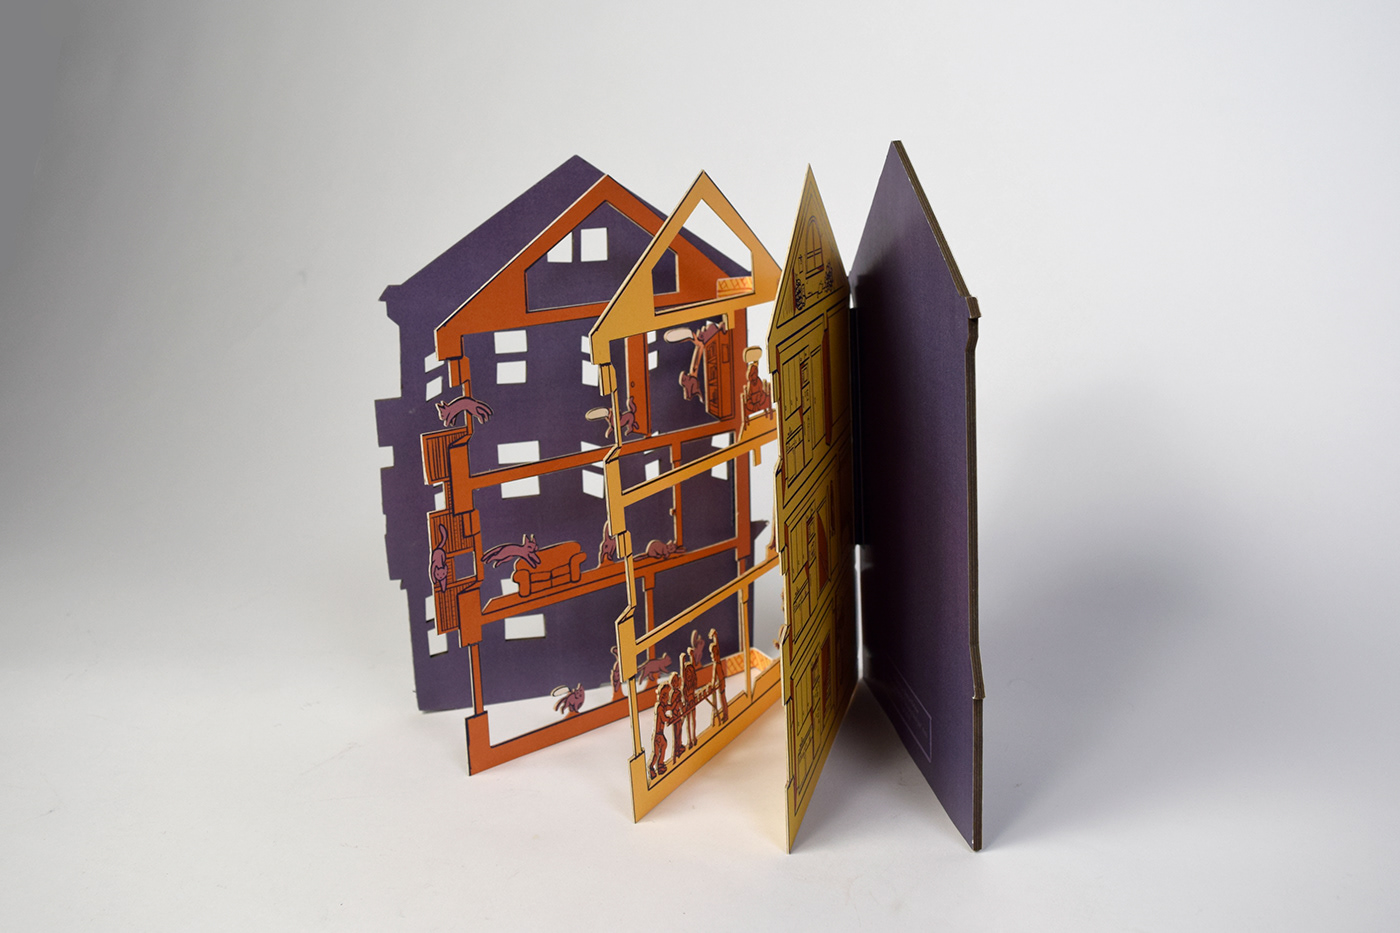 childrens book pop up book Accordian Book artist book doll house paper dolls joy DELIGHT